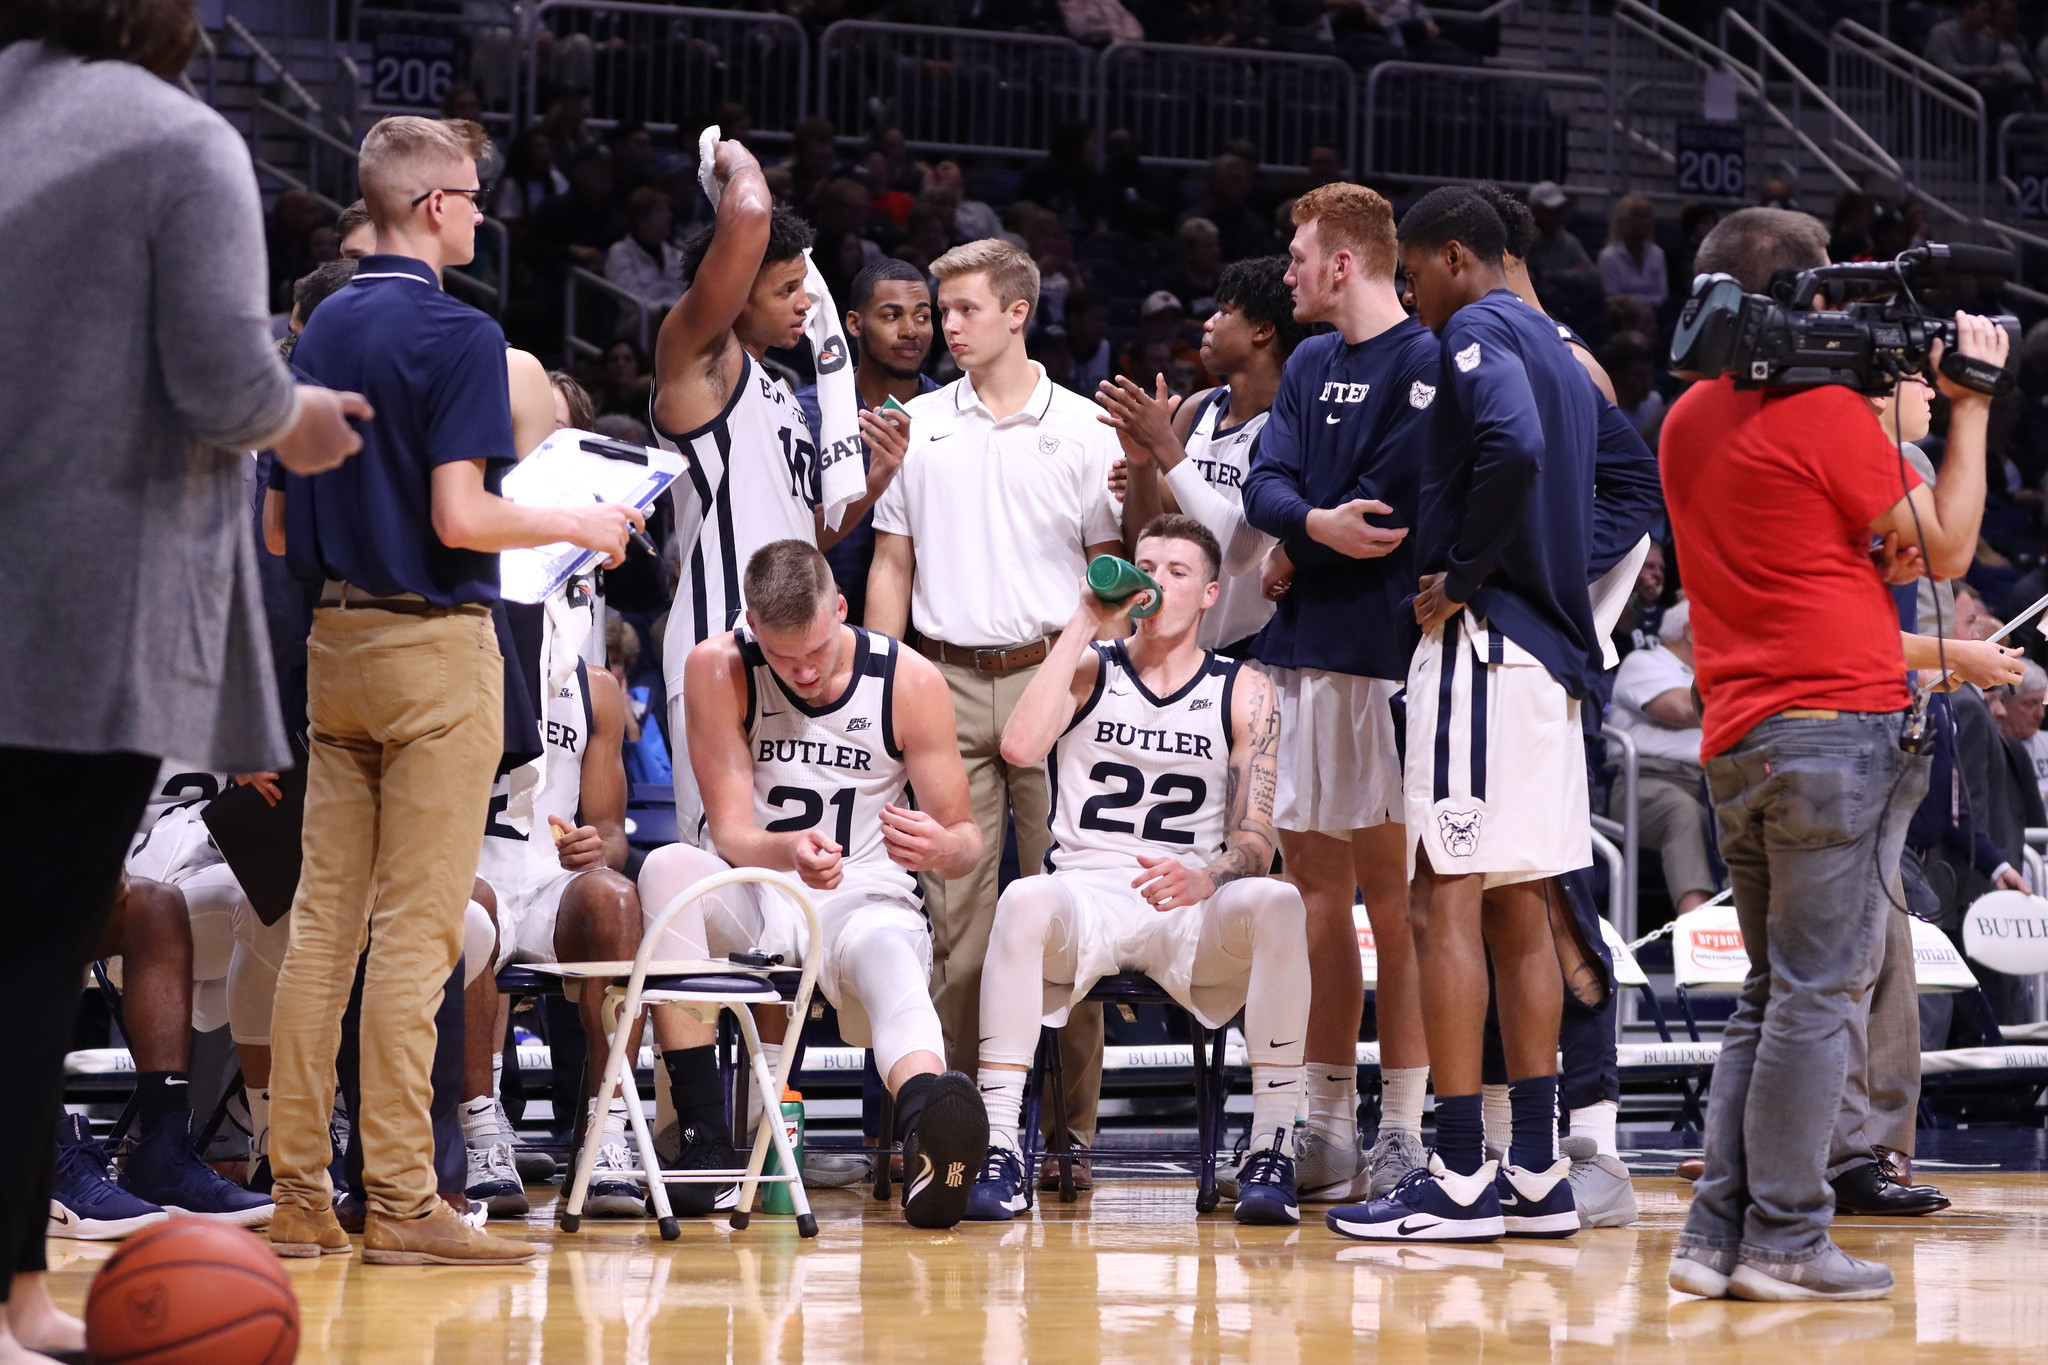 Predicting The Big East Basketball Conference Standings